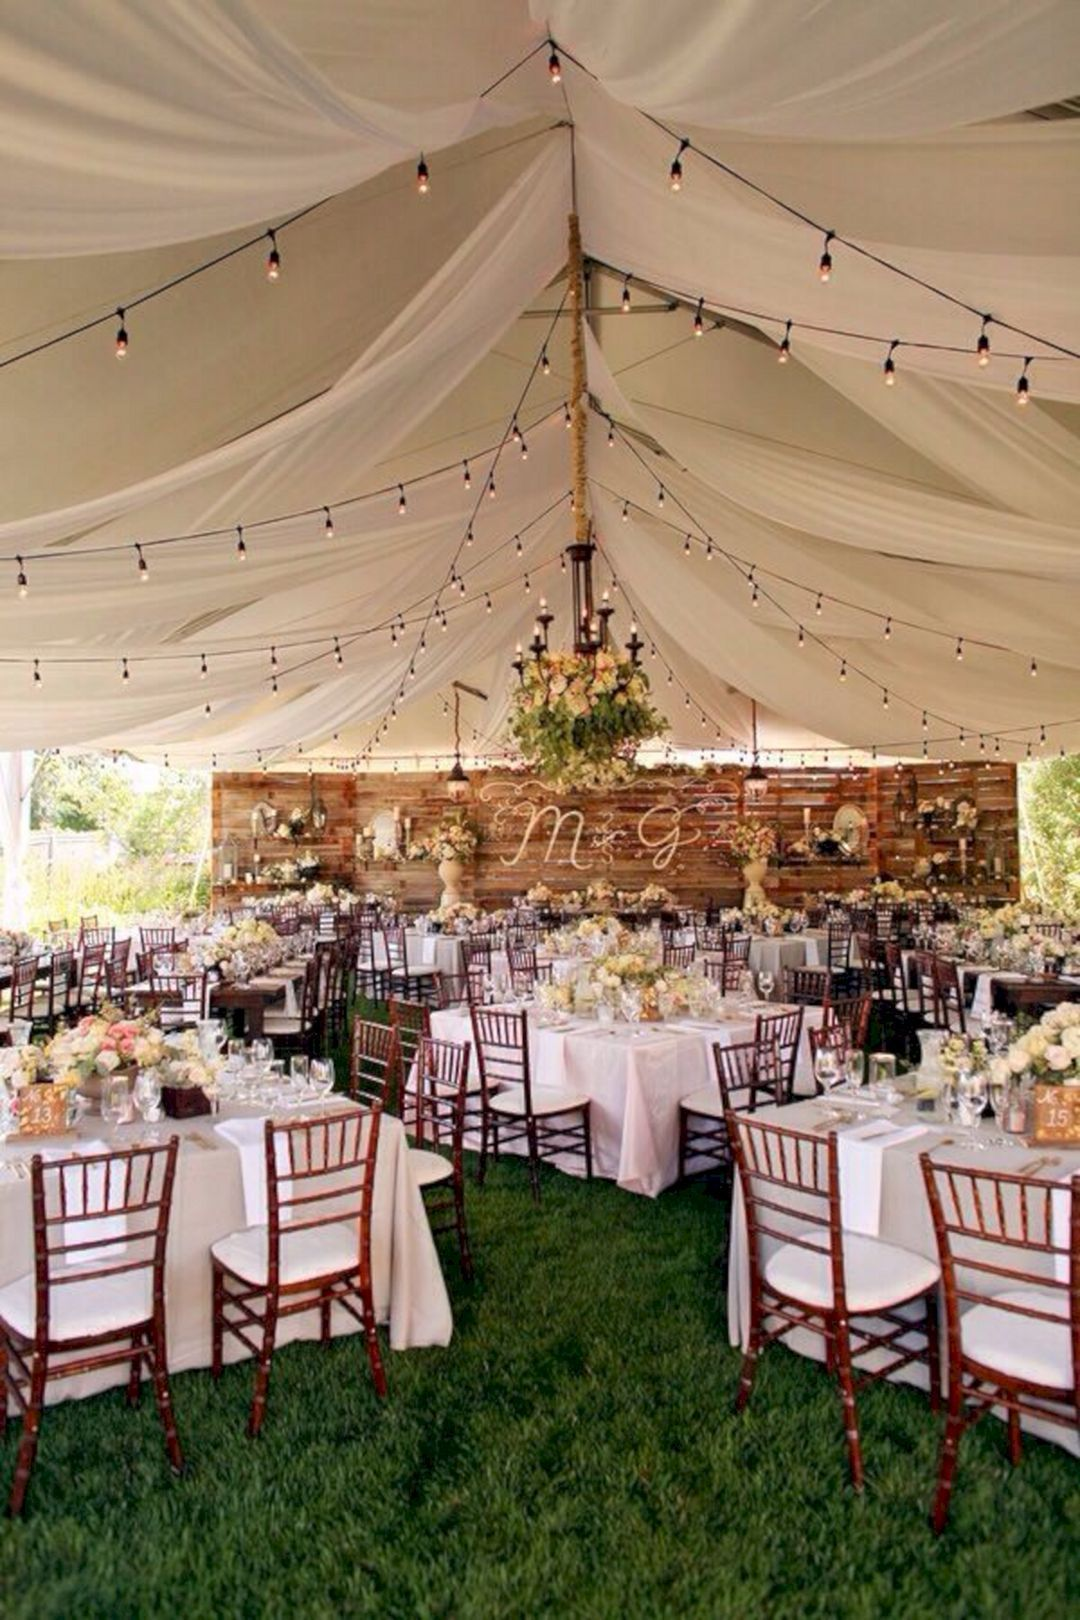 Ideas for wedding decorations outside   Best Backyard Wedding Decoration Ideas On A Budget  Backyard